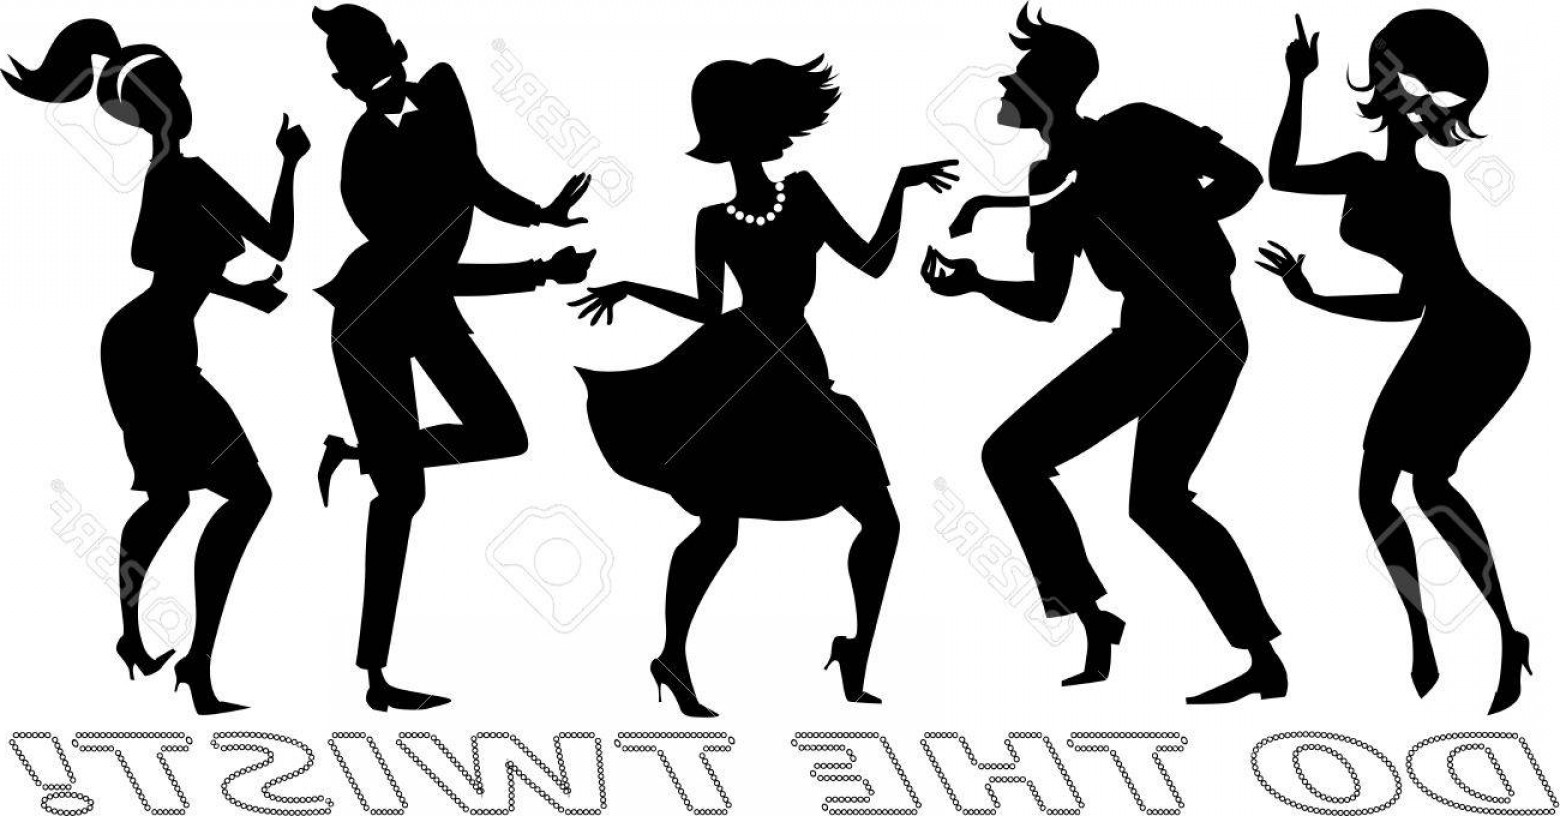 1560x816 Photostock Vector Black Vector Silhouettes Of People Dressed In